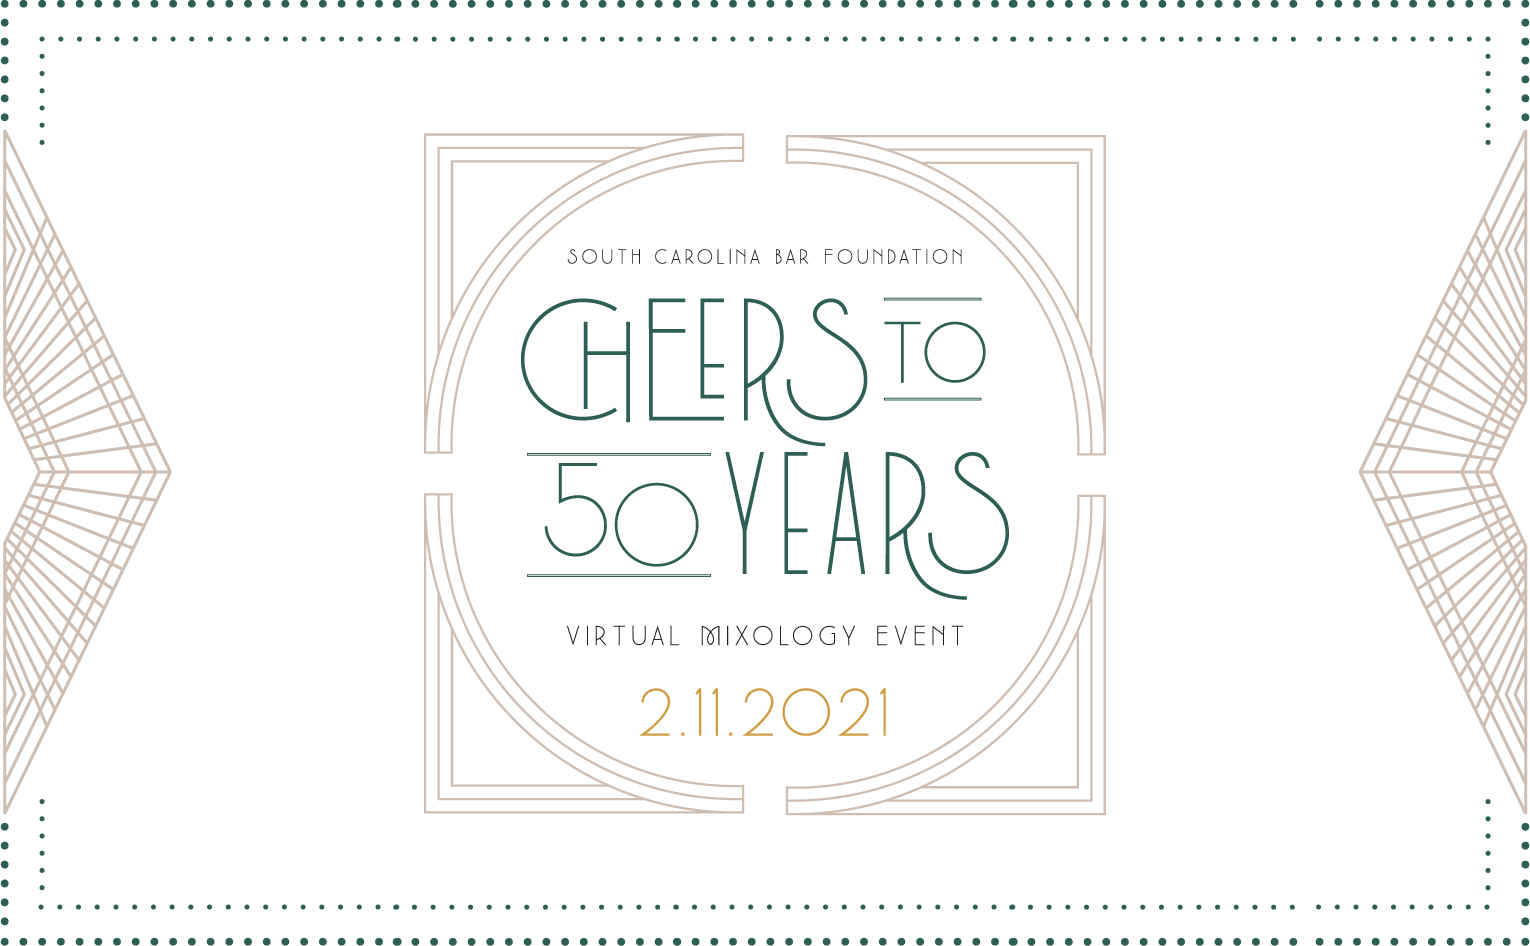 Cheers to 50 Years   SCBF's Virtual Celebration Event image